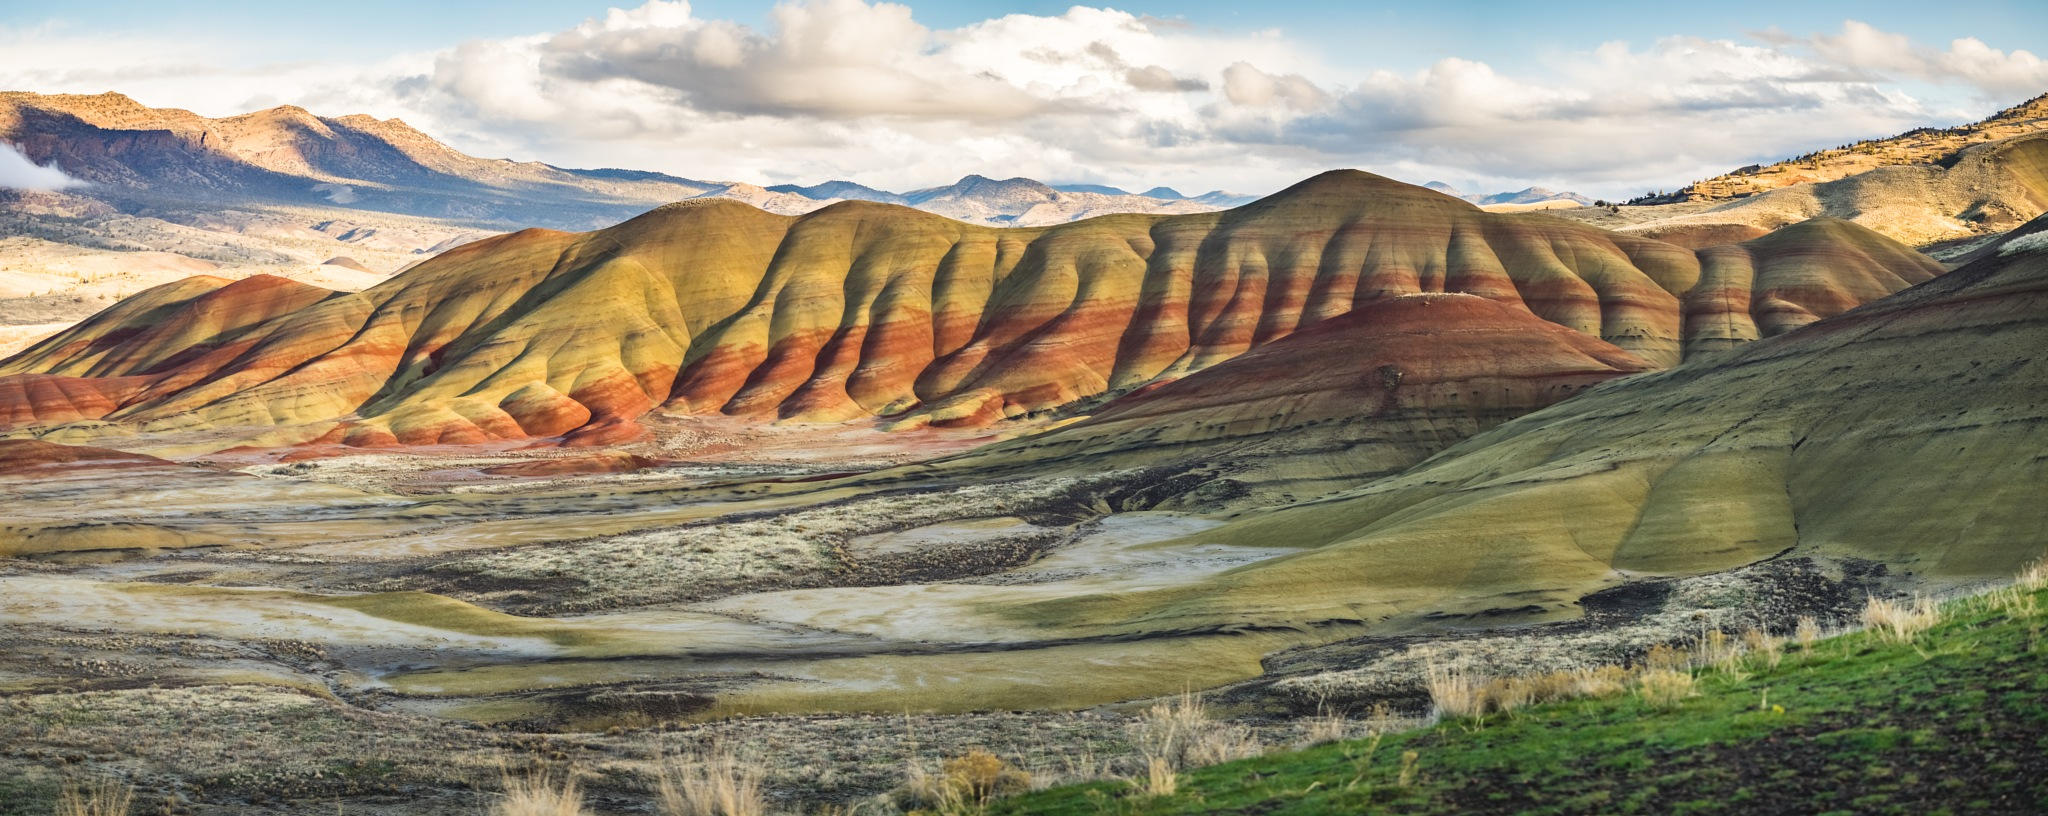 Painted Hills by DivingMeCrazy